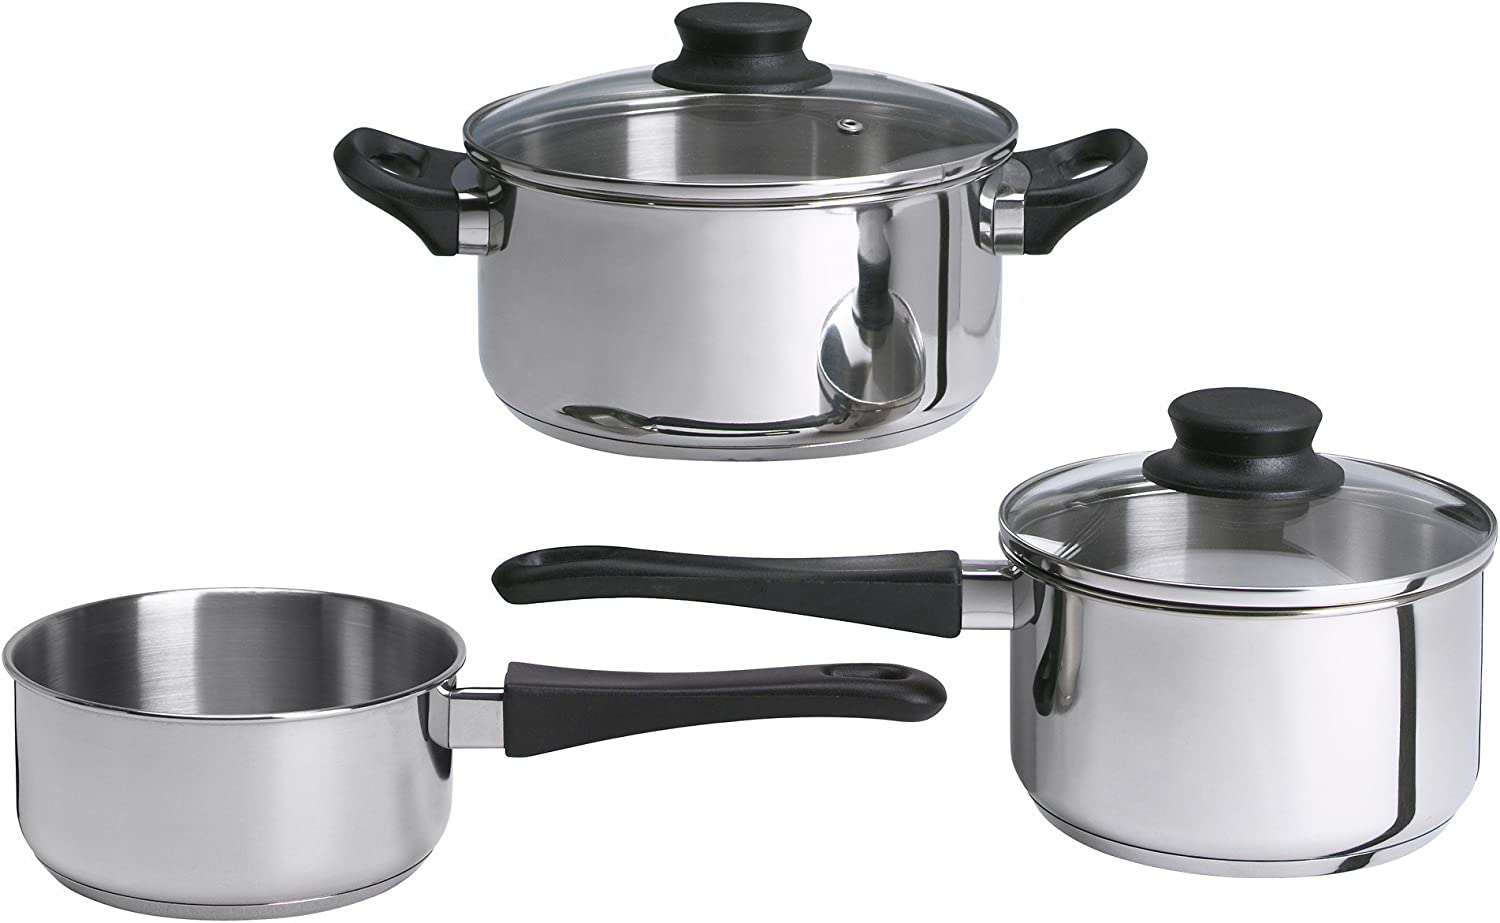 IKEA - Best cookware for gas stoves